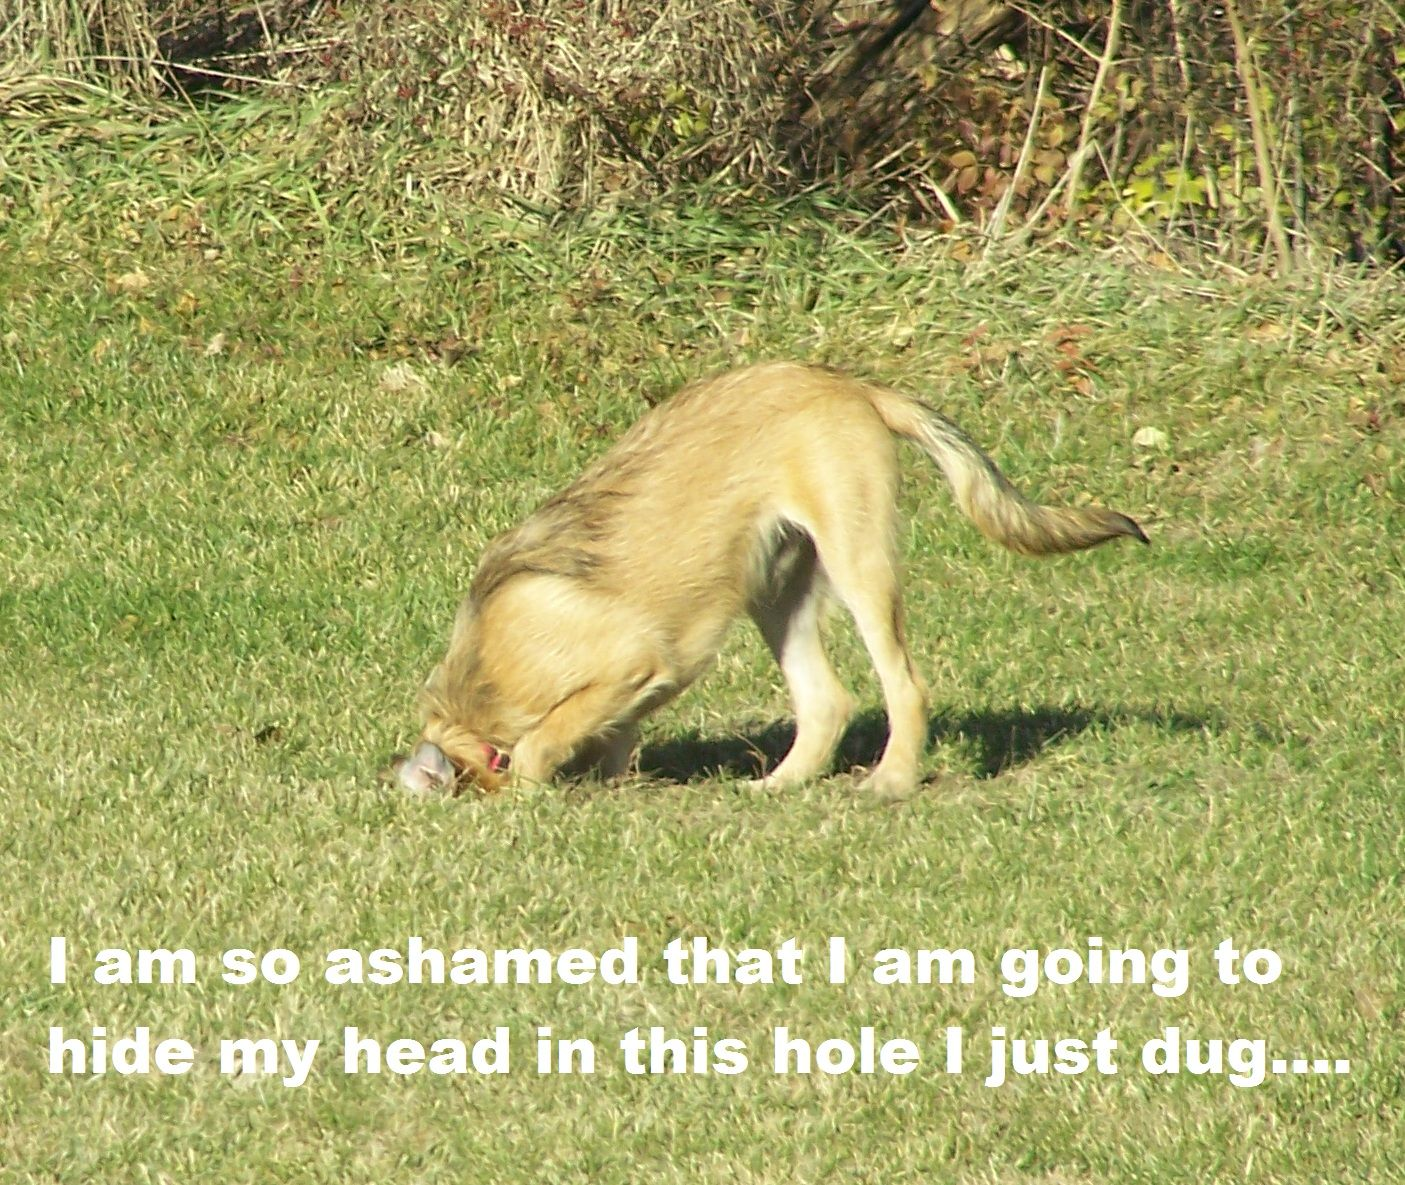 Jake Hole Cropped With Text Dog Shaming I Love Dogs Ostrich